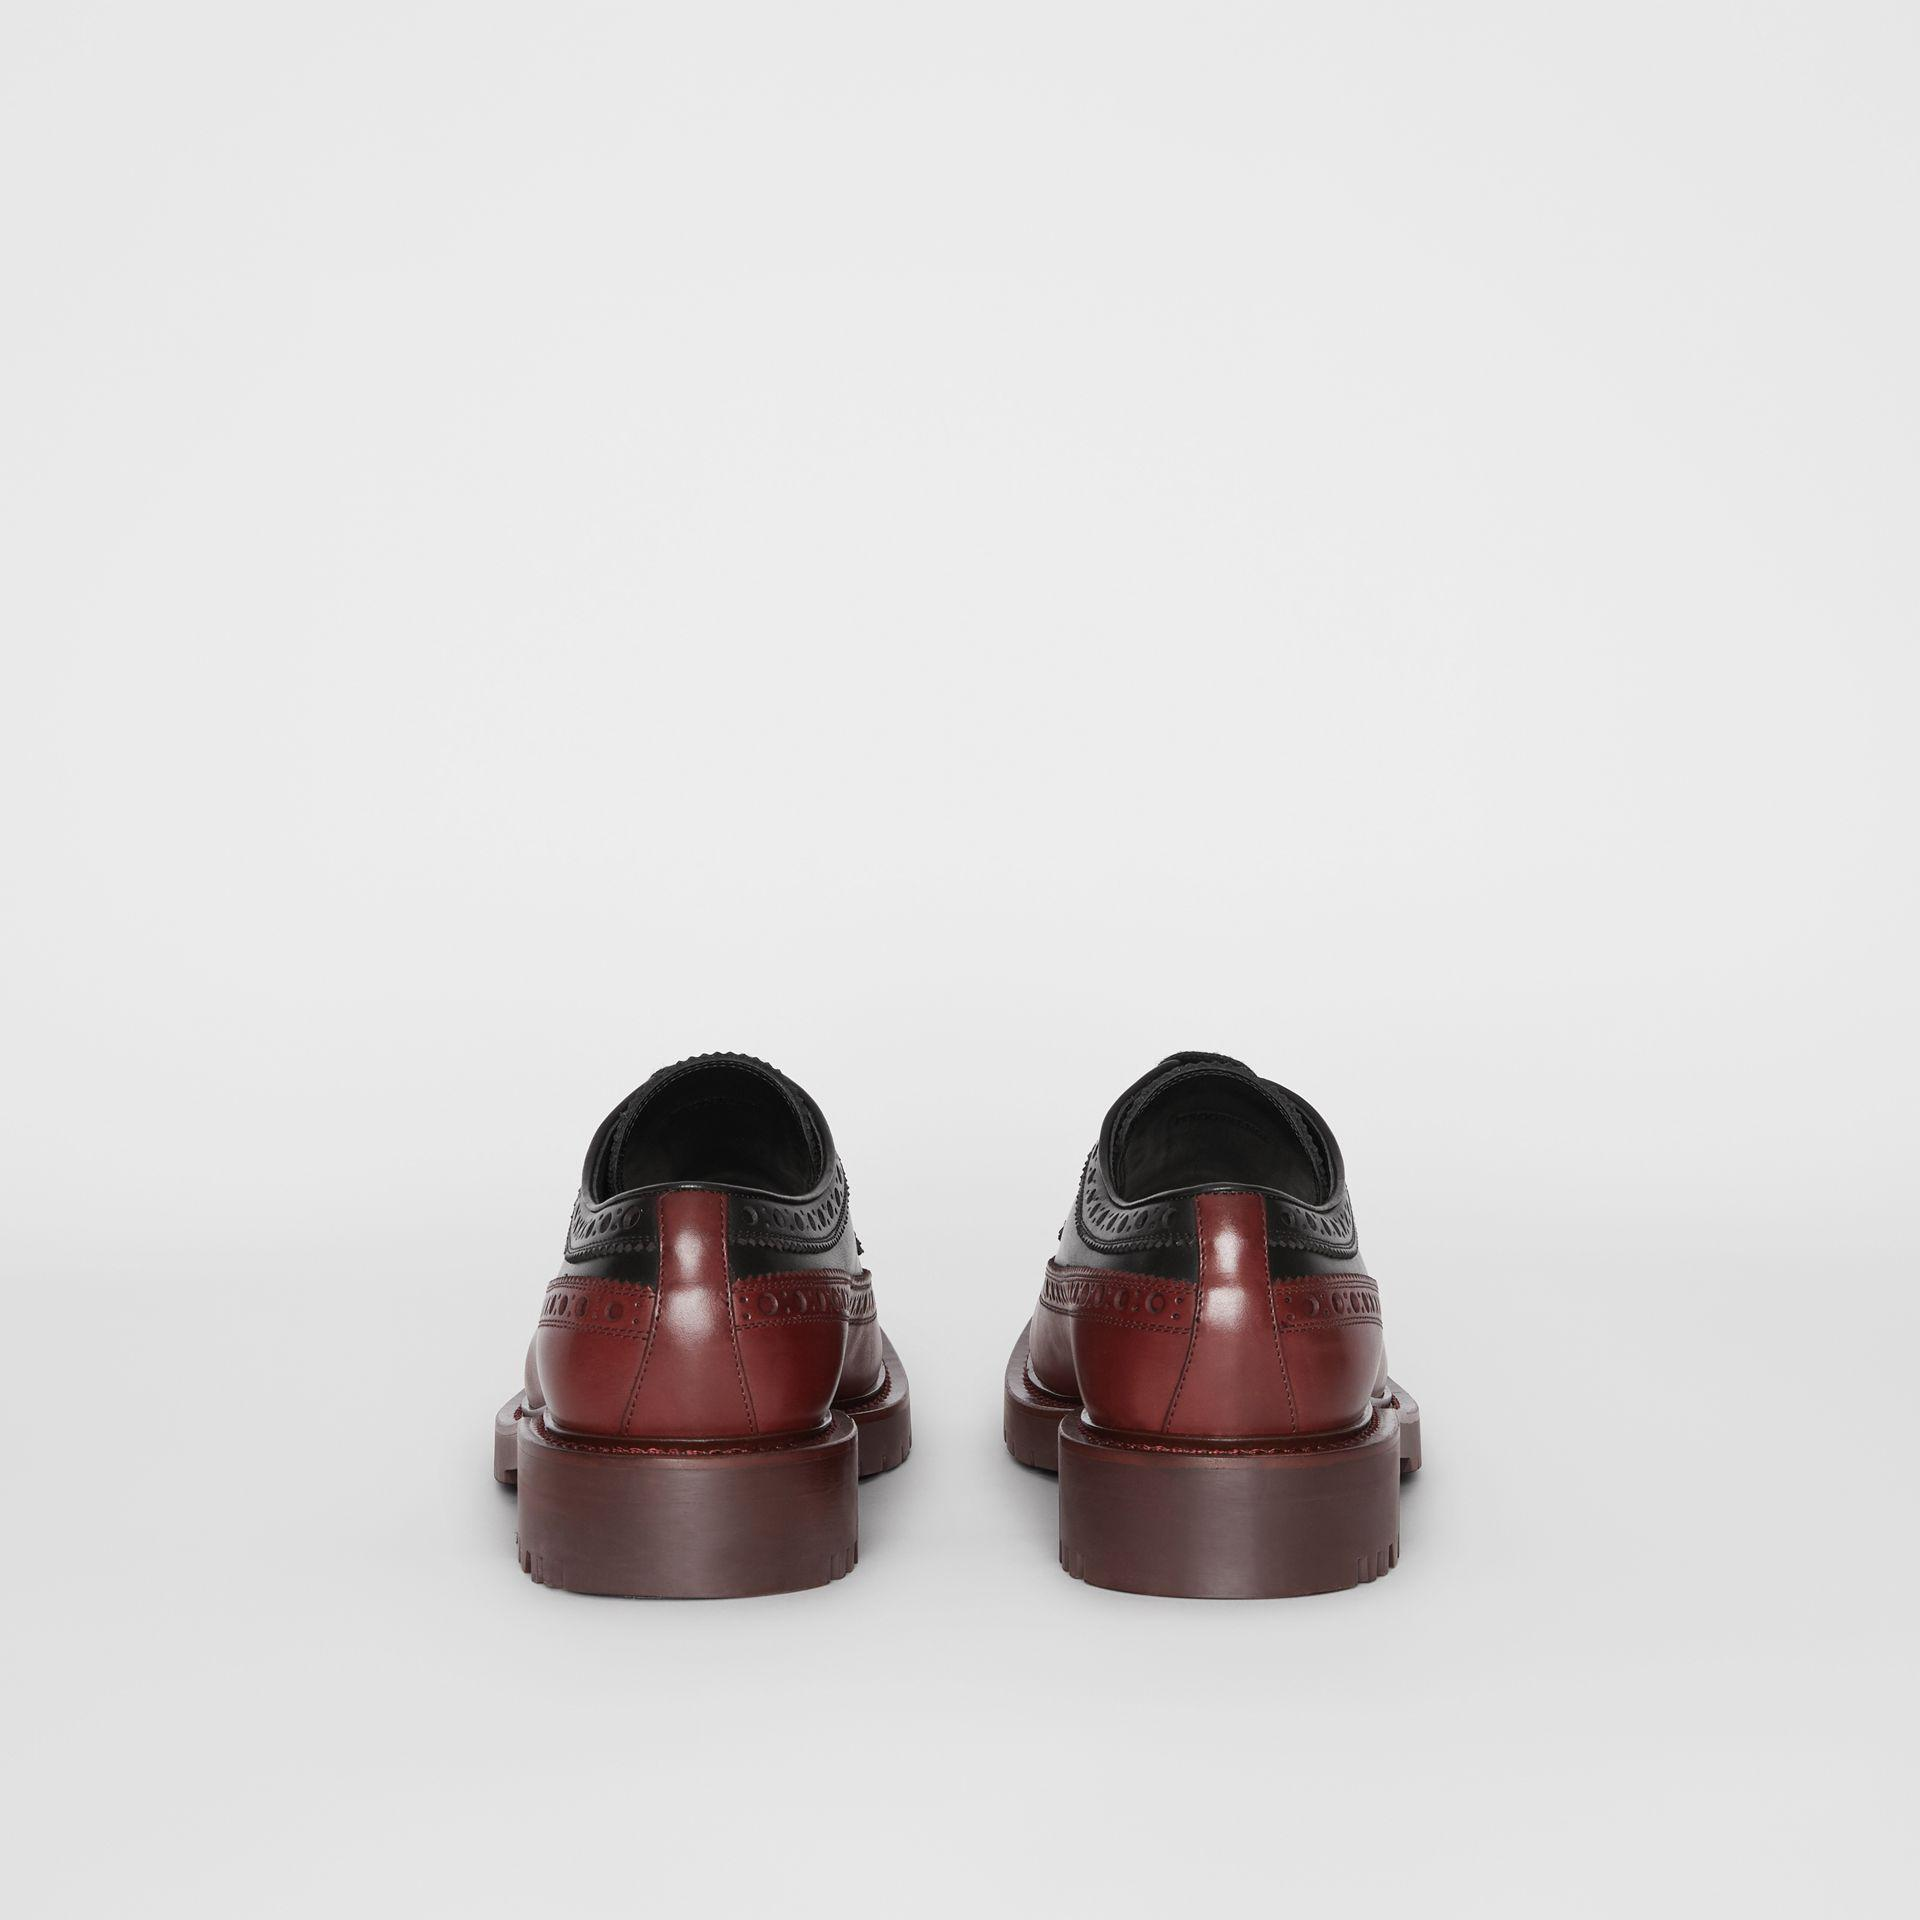 a49c23697 Burberry Brogue Detail Leather Derby Shoes In Black